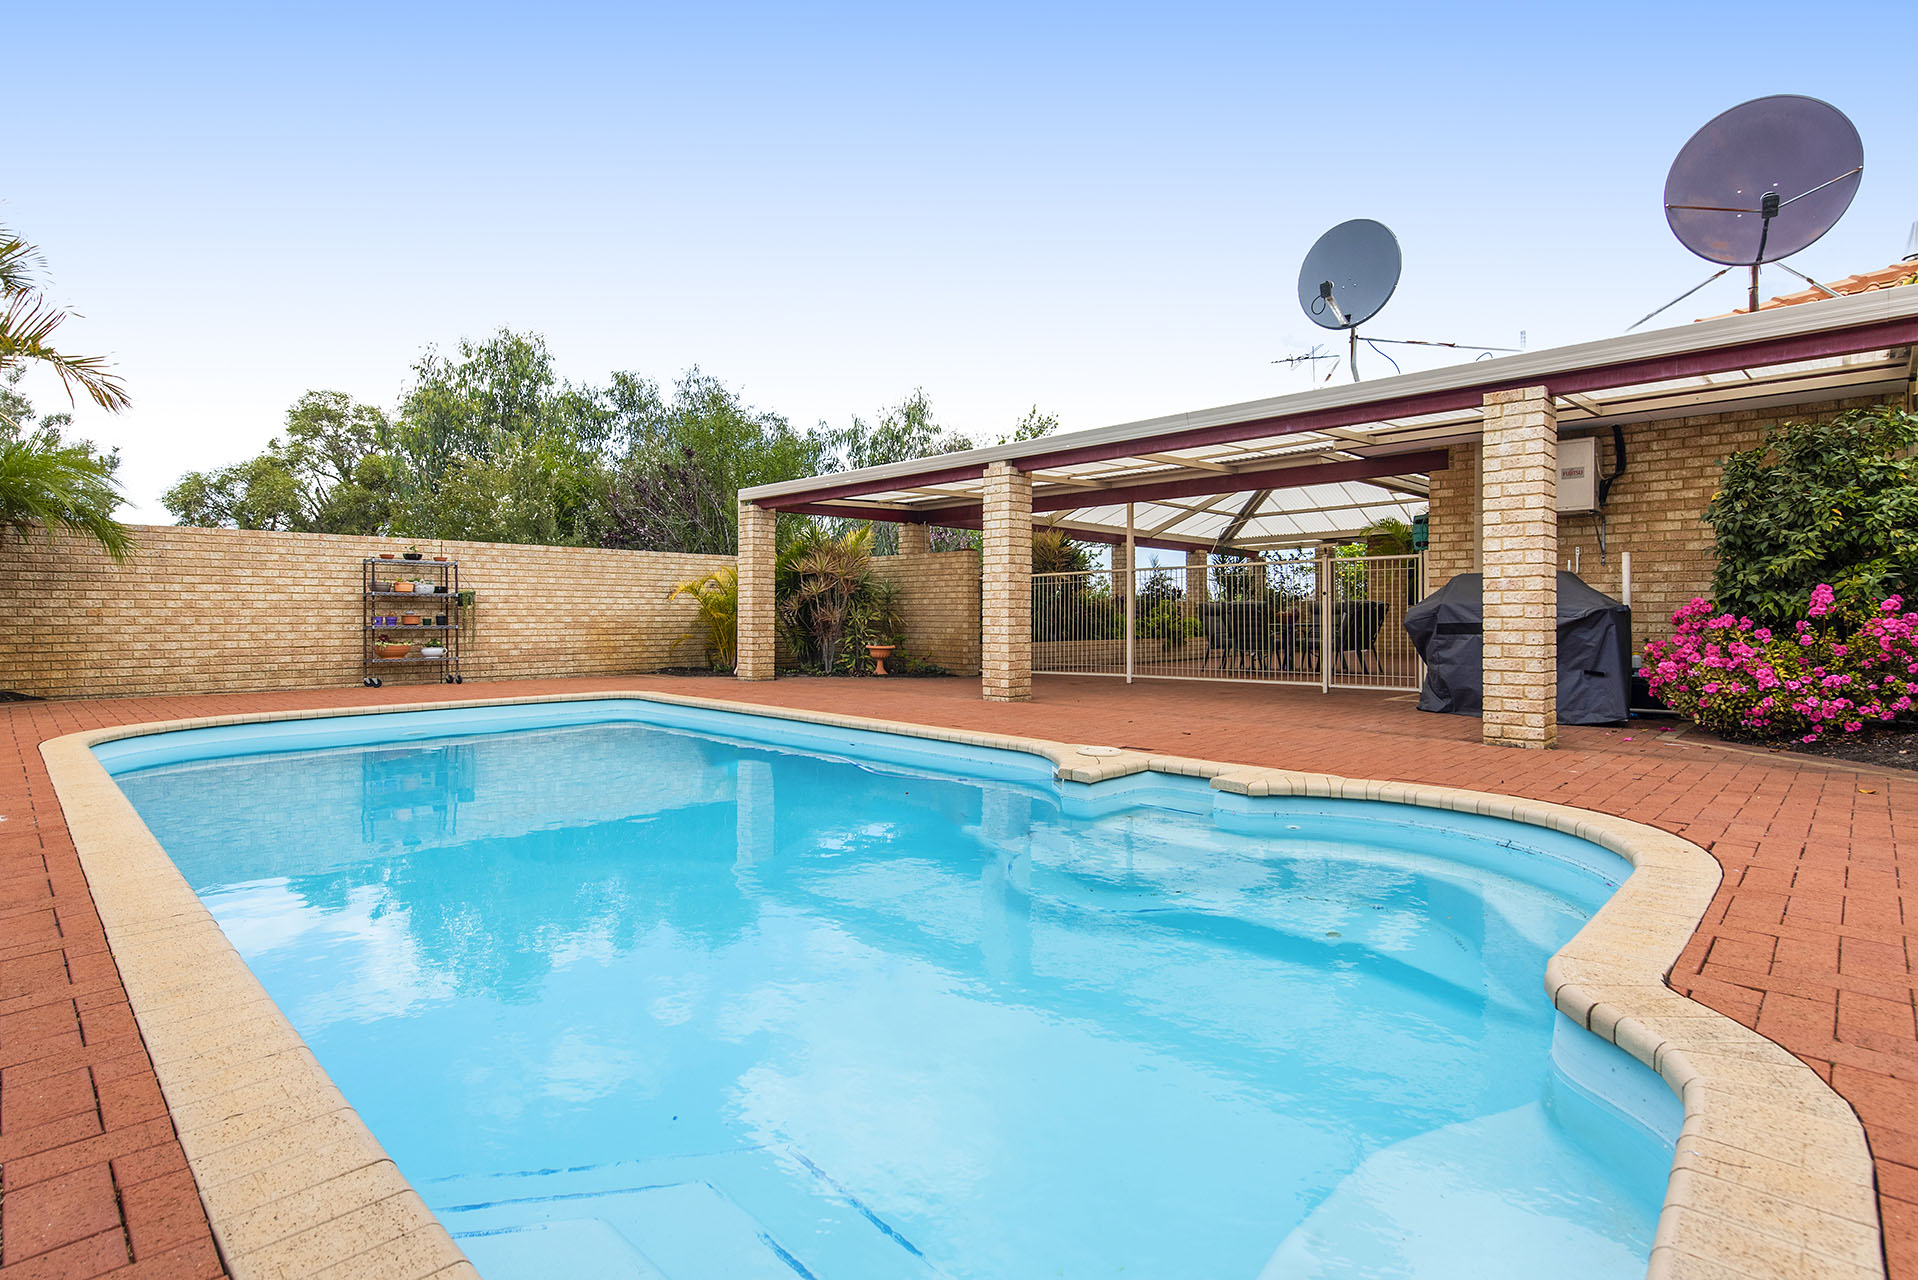 Property for sale in CANNING VALE, 2 Protea Place : Attree Real Estate